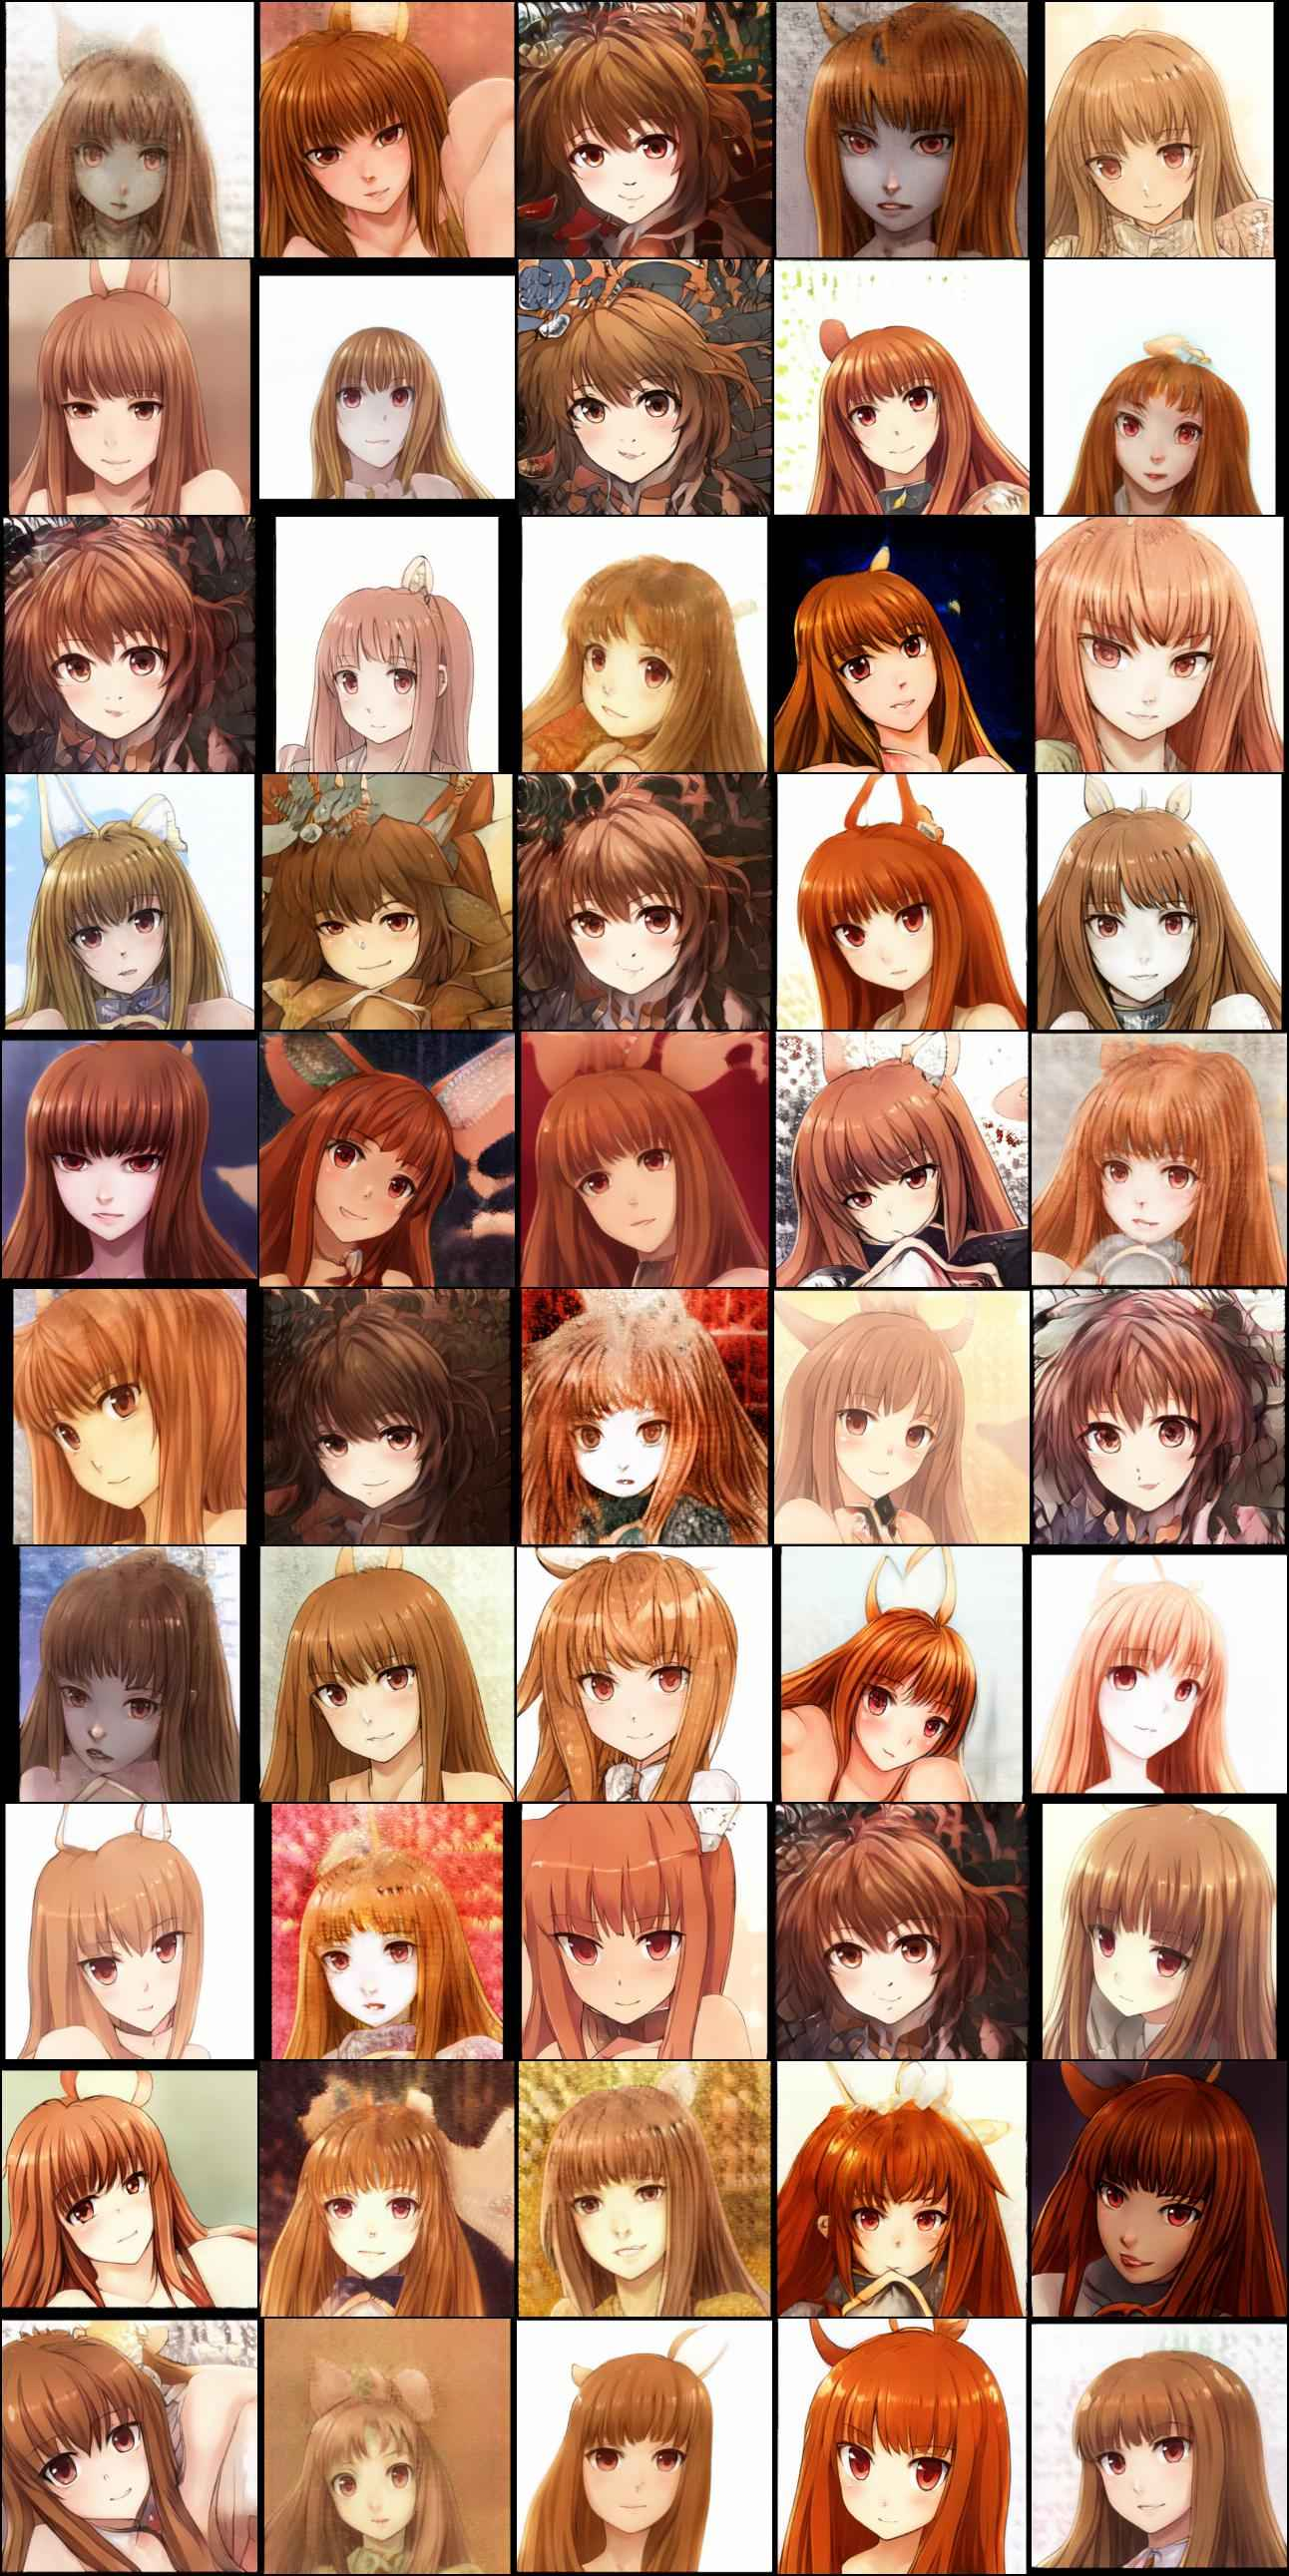 Holo (Spice and Wolf), class #273 random samples